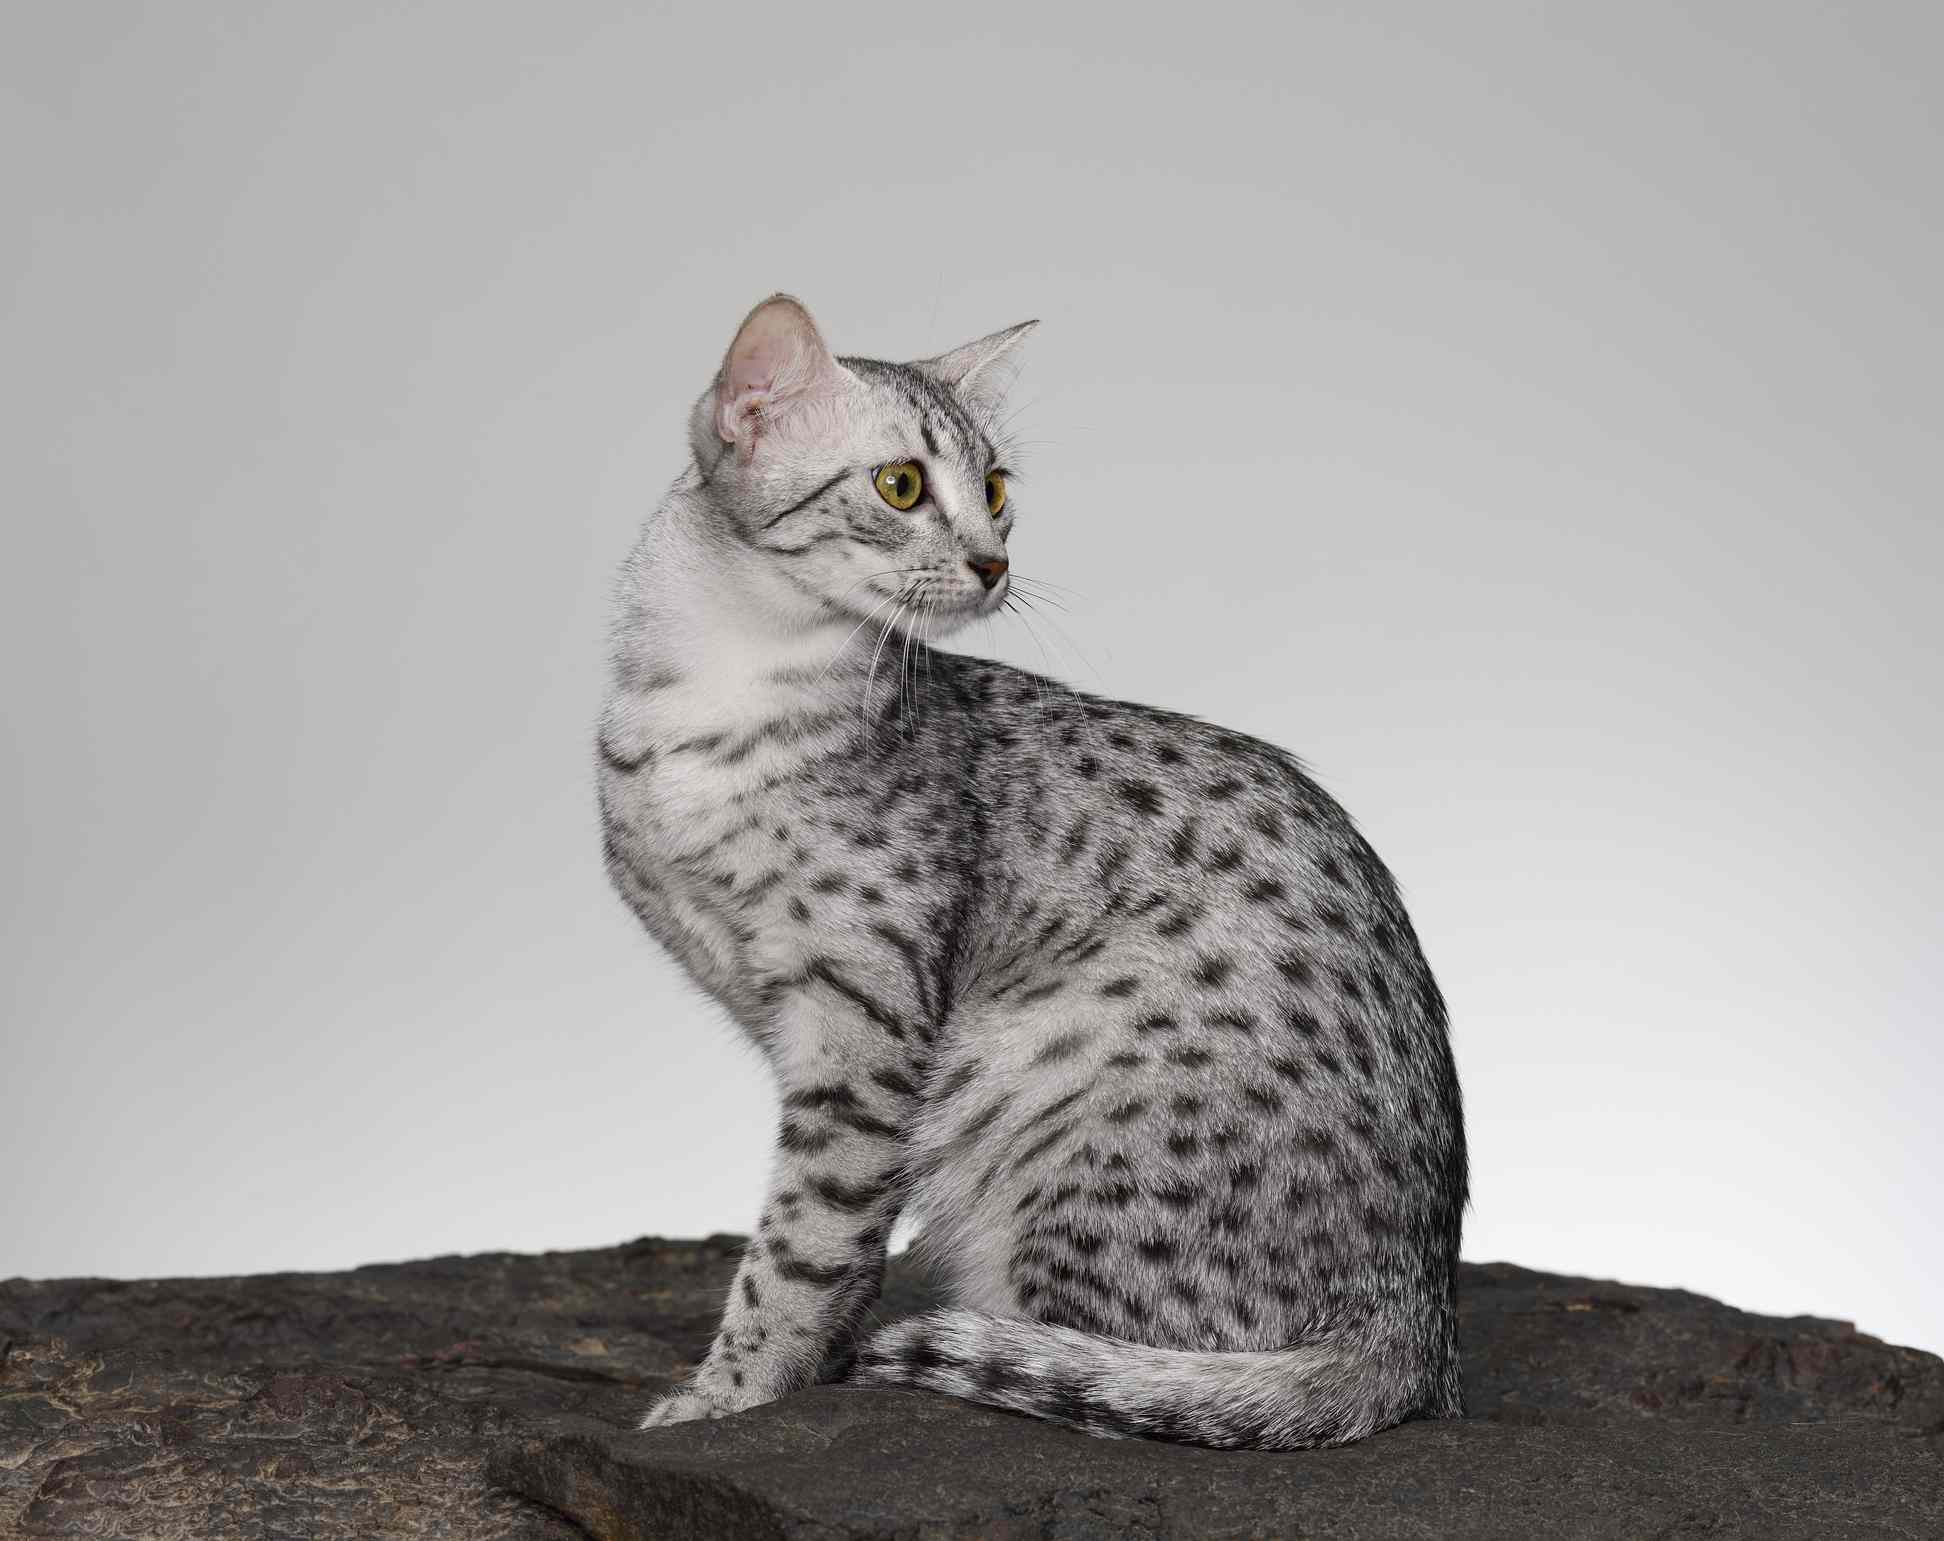 A spotted Egyptian Mau cat sitting up but looking behind him.